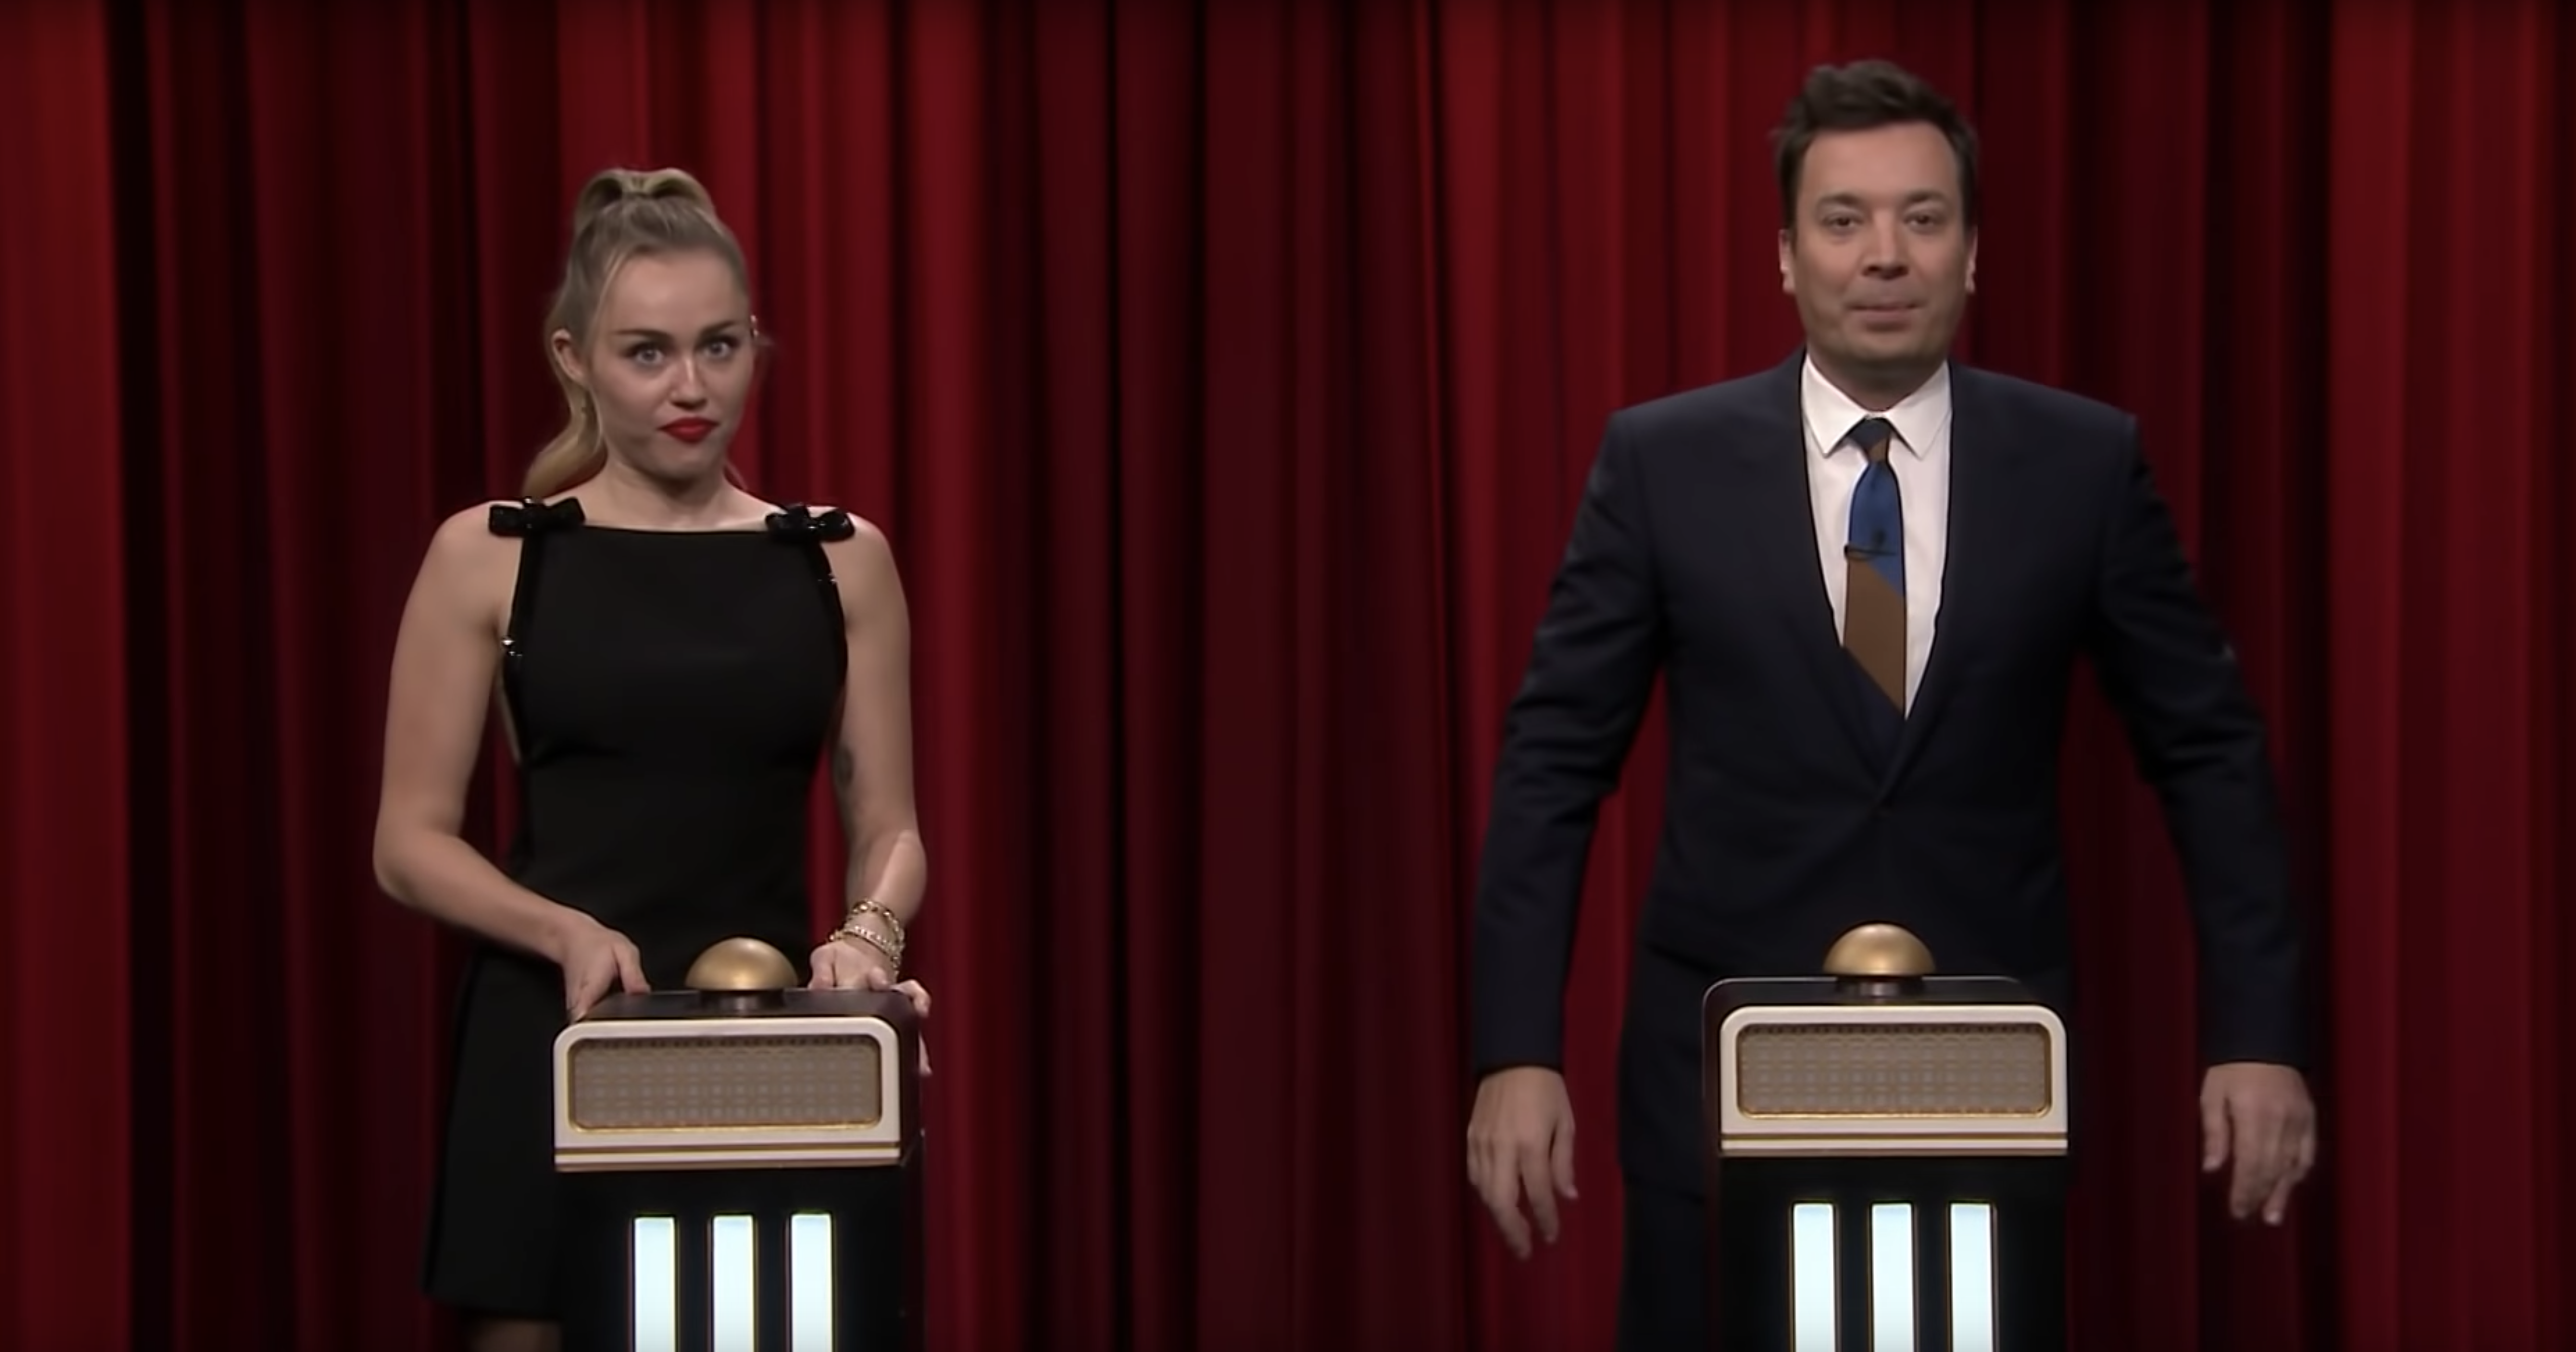 Watch Miley Cyrus Play \'Name That Song\' With Jimmy Fallon, the Roots ...